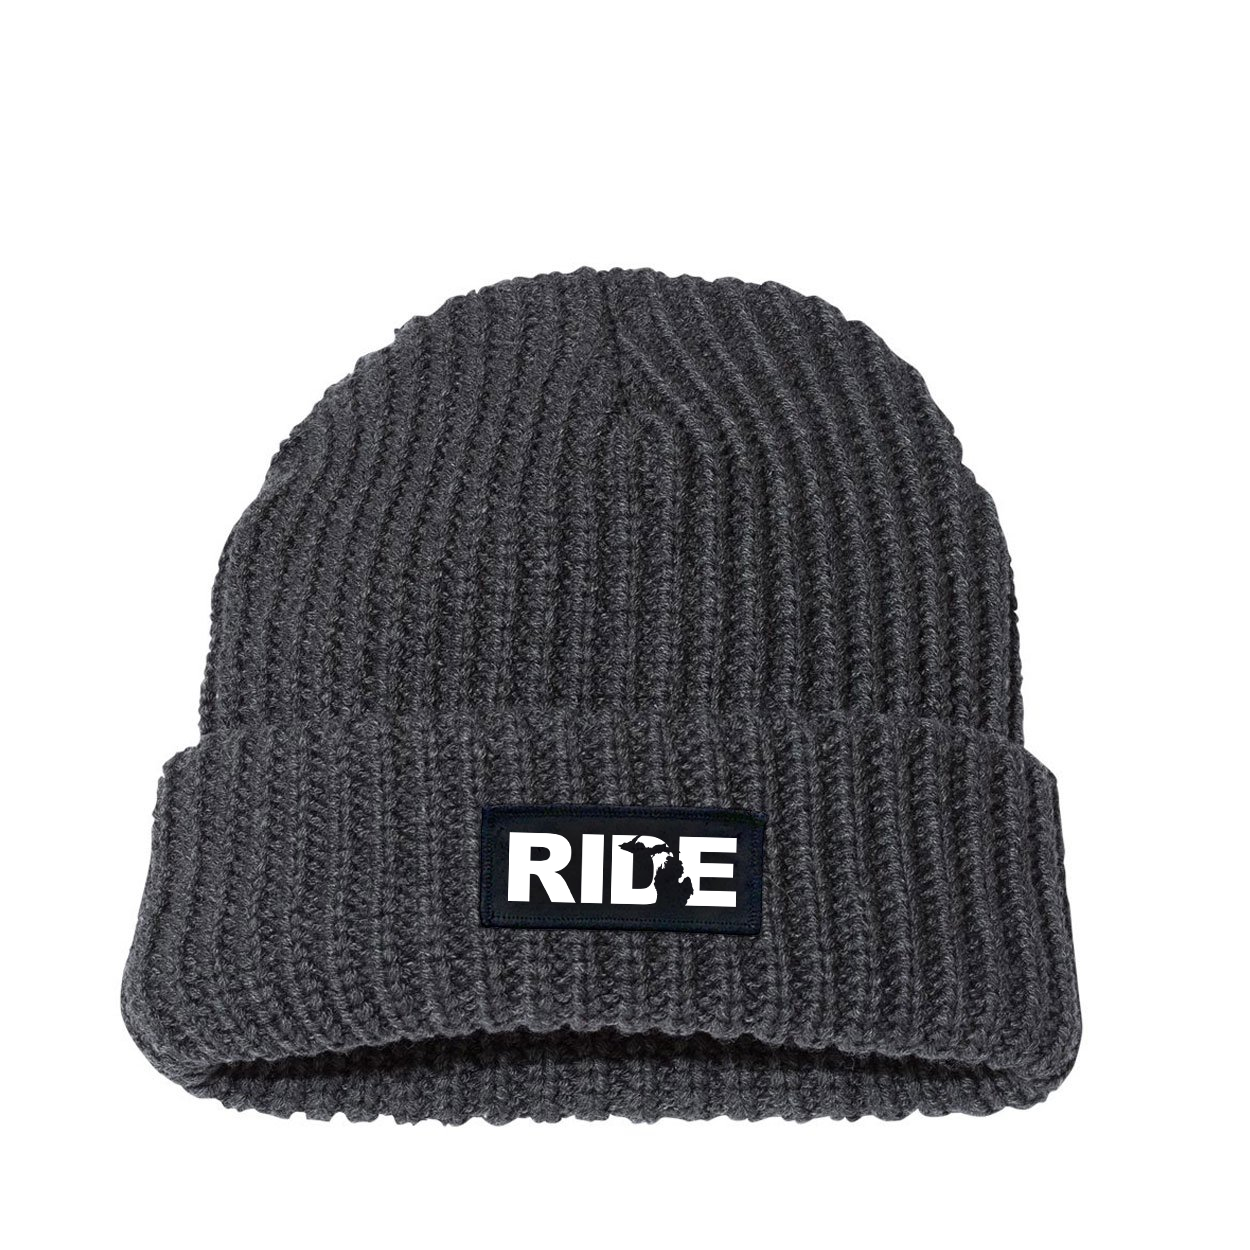 Ride Michigan Night Out Woven Patch Roll Up Jumbo Chunky Knit Beanie Charcoal (White Logo)